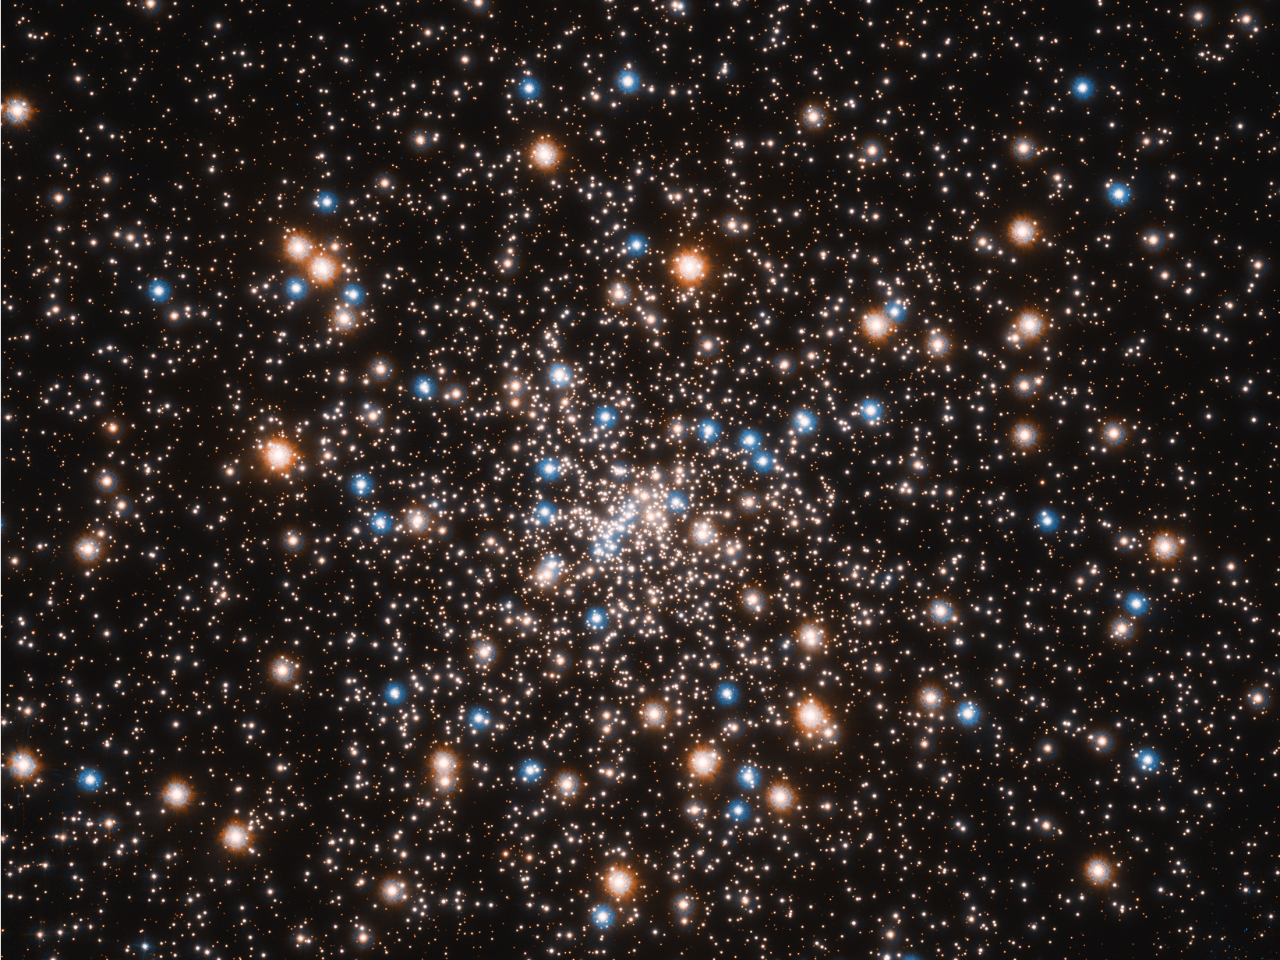 The colorful dots that make up the stars of a distant galaxy.